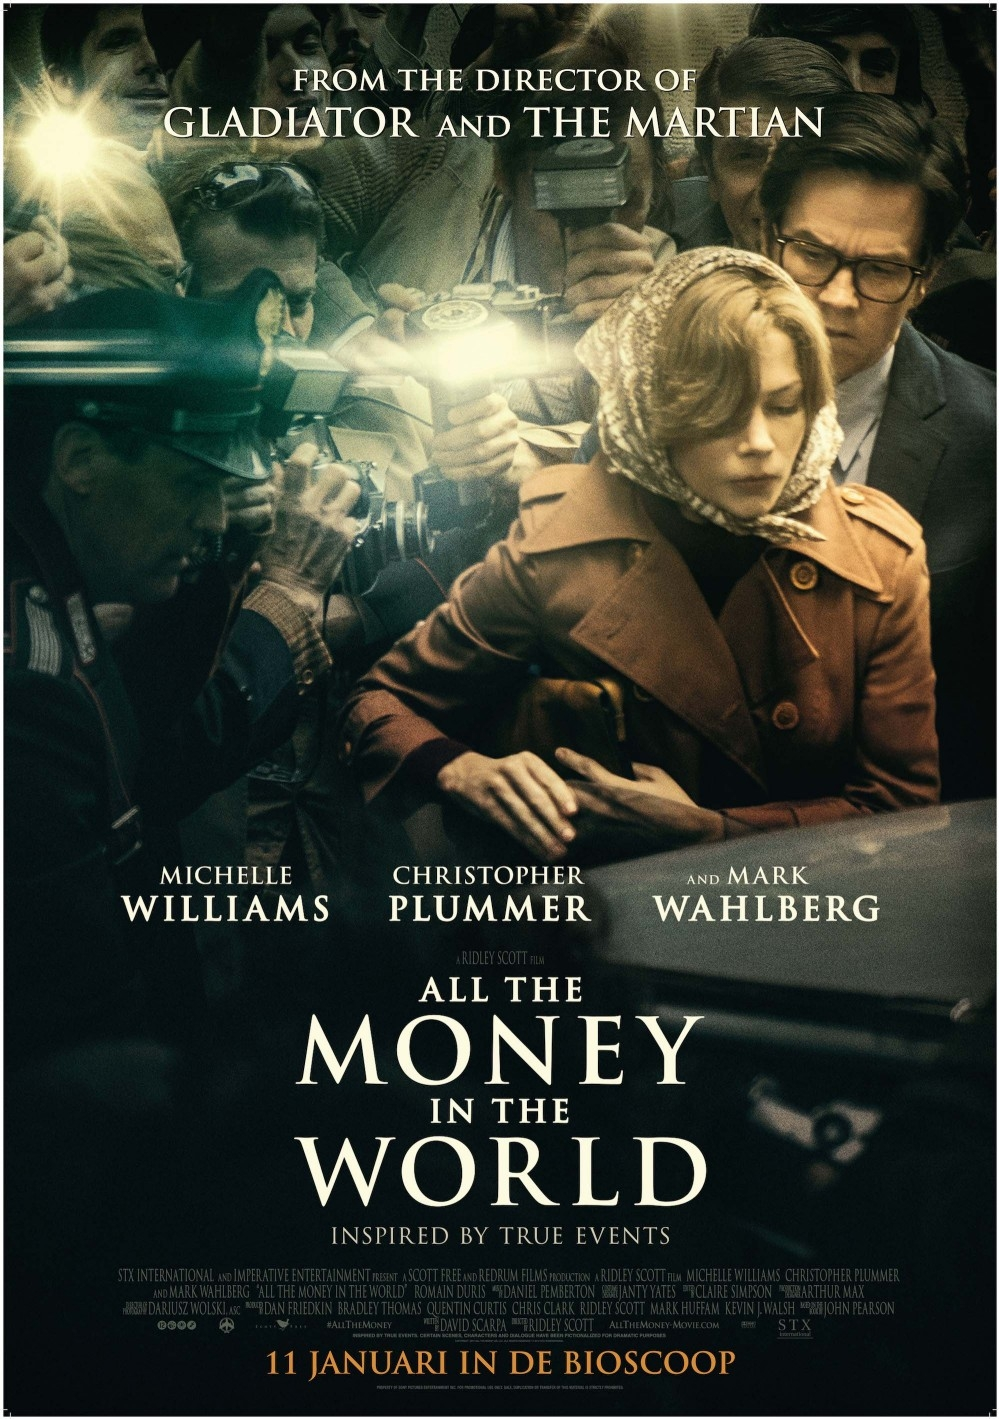 All the Money in the World poster, © 2017 The Searchers